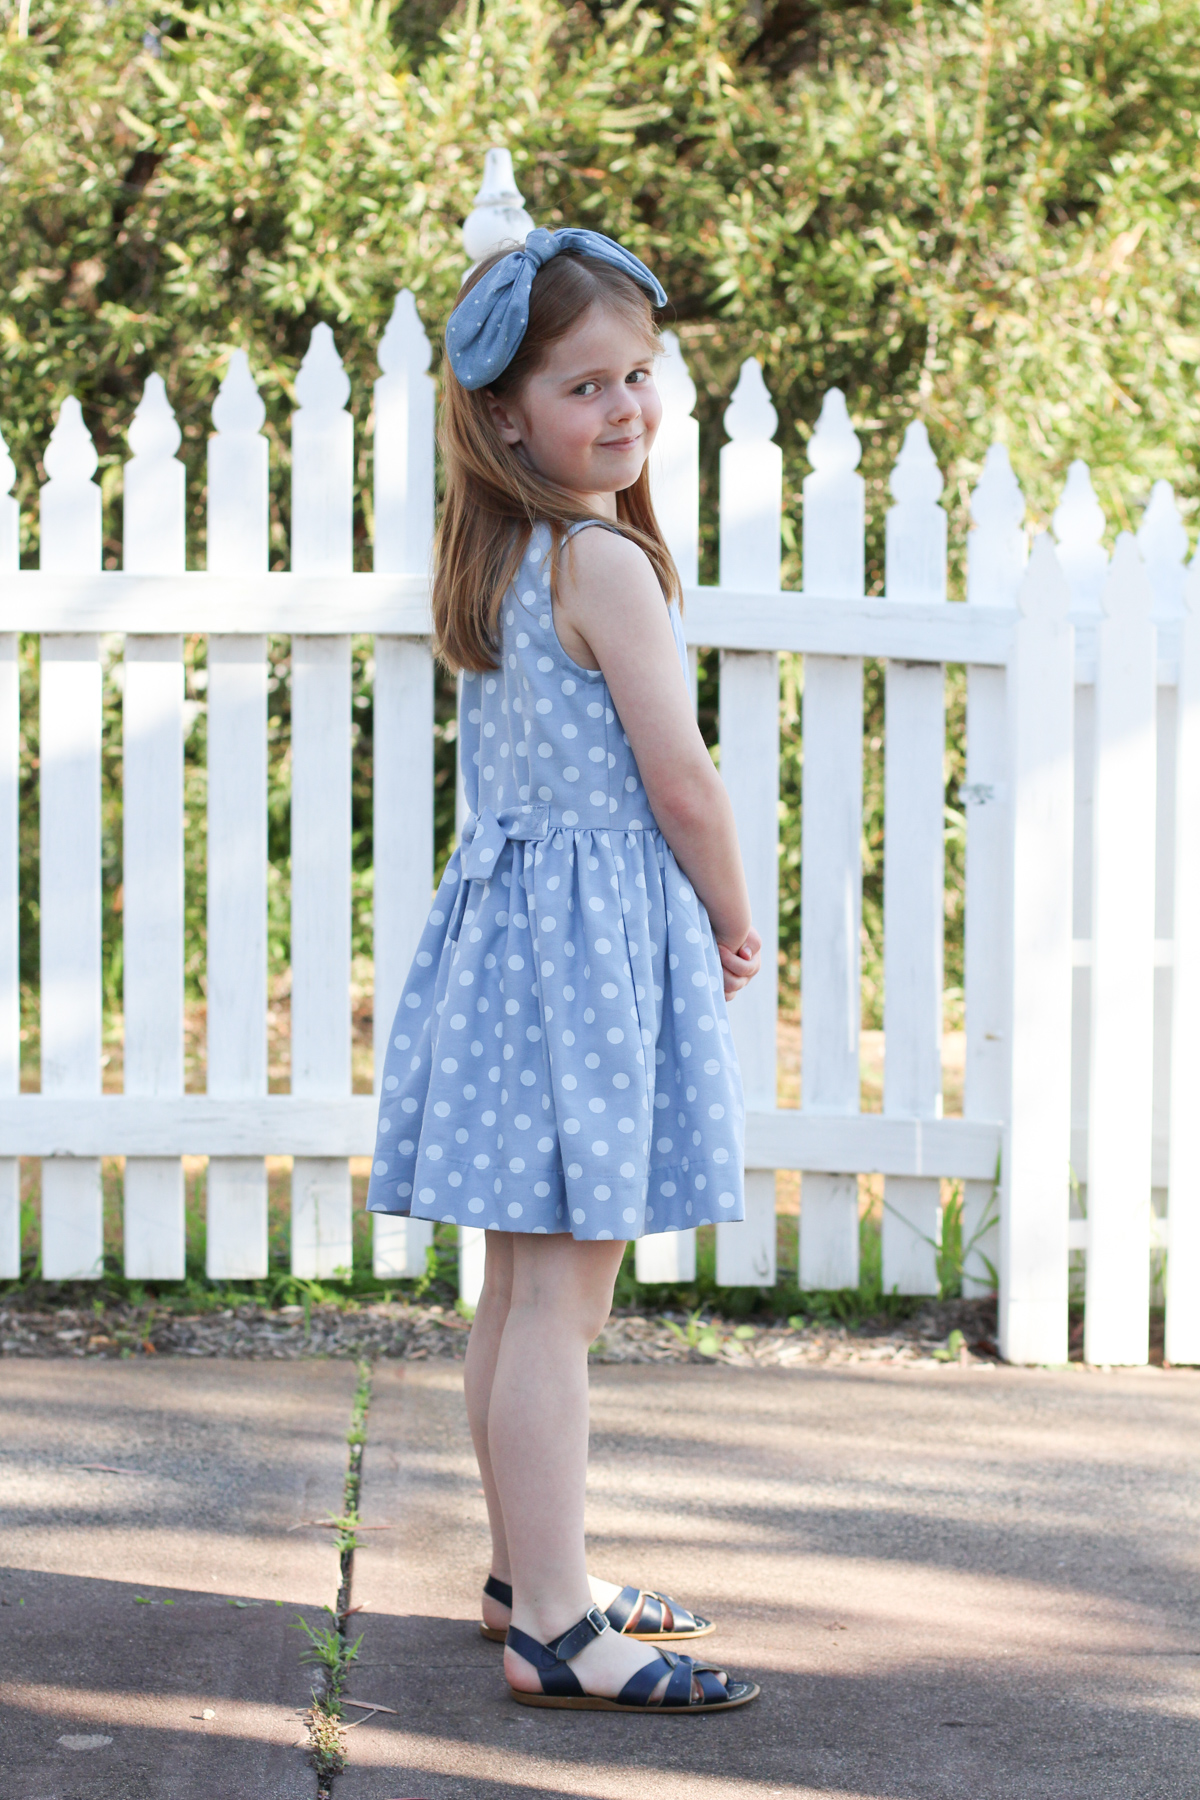 Birdie in her Mini Darling Ranges dress